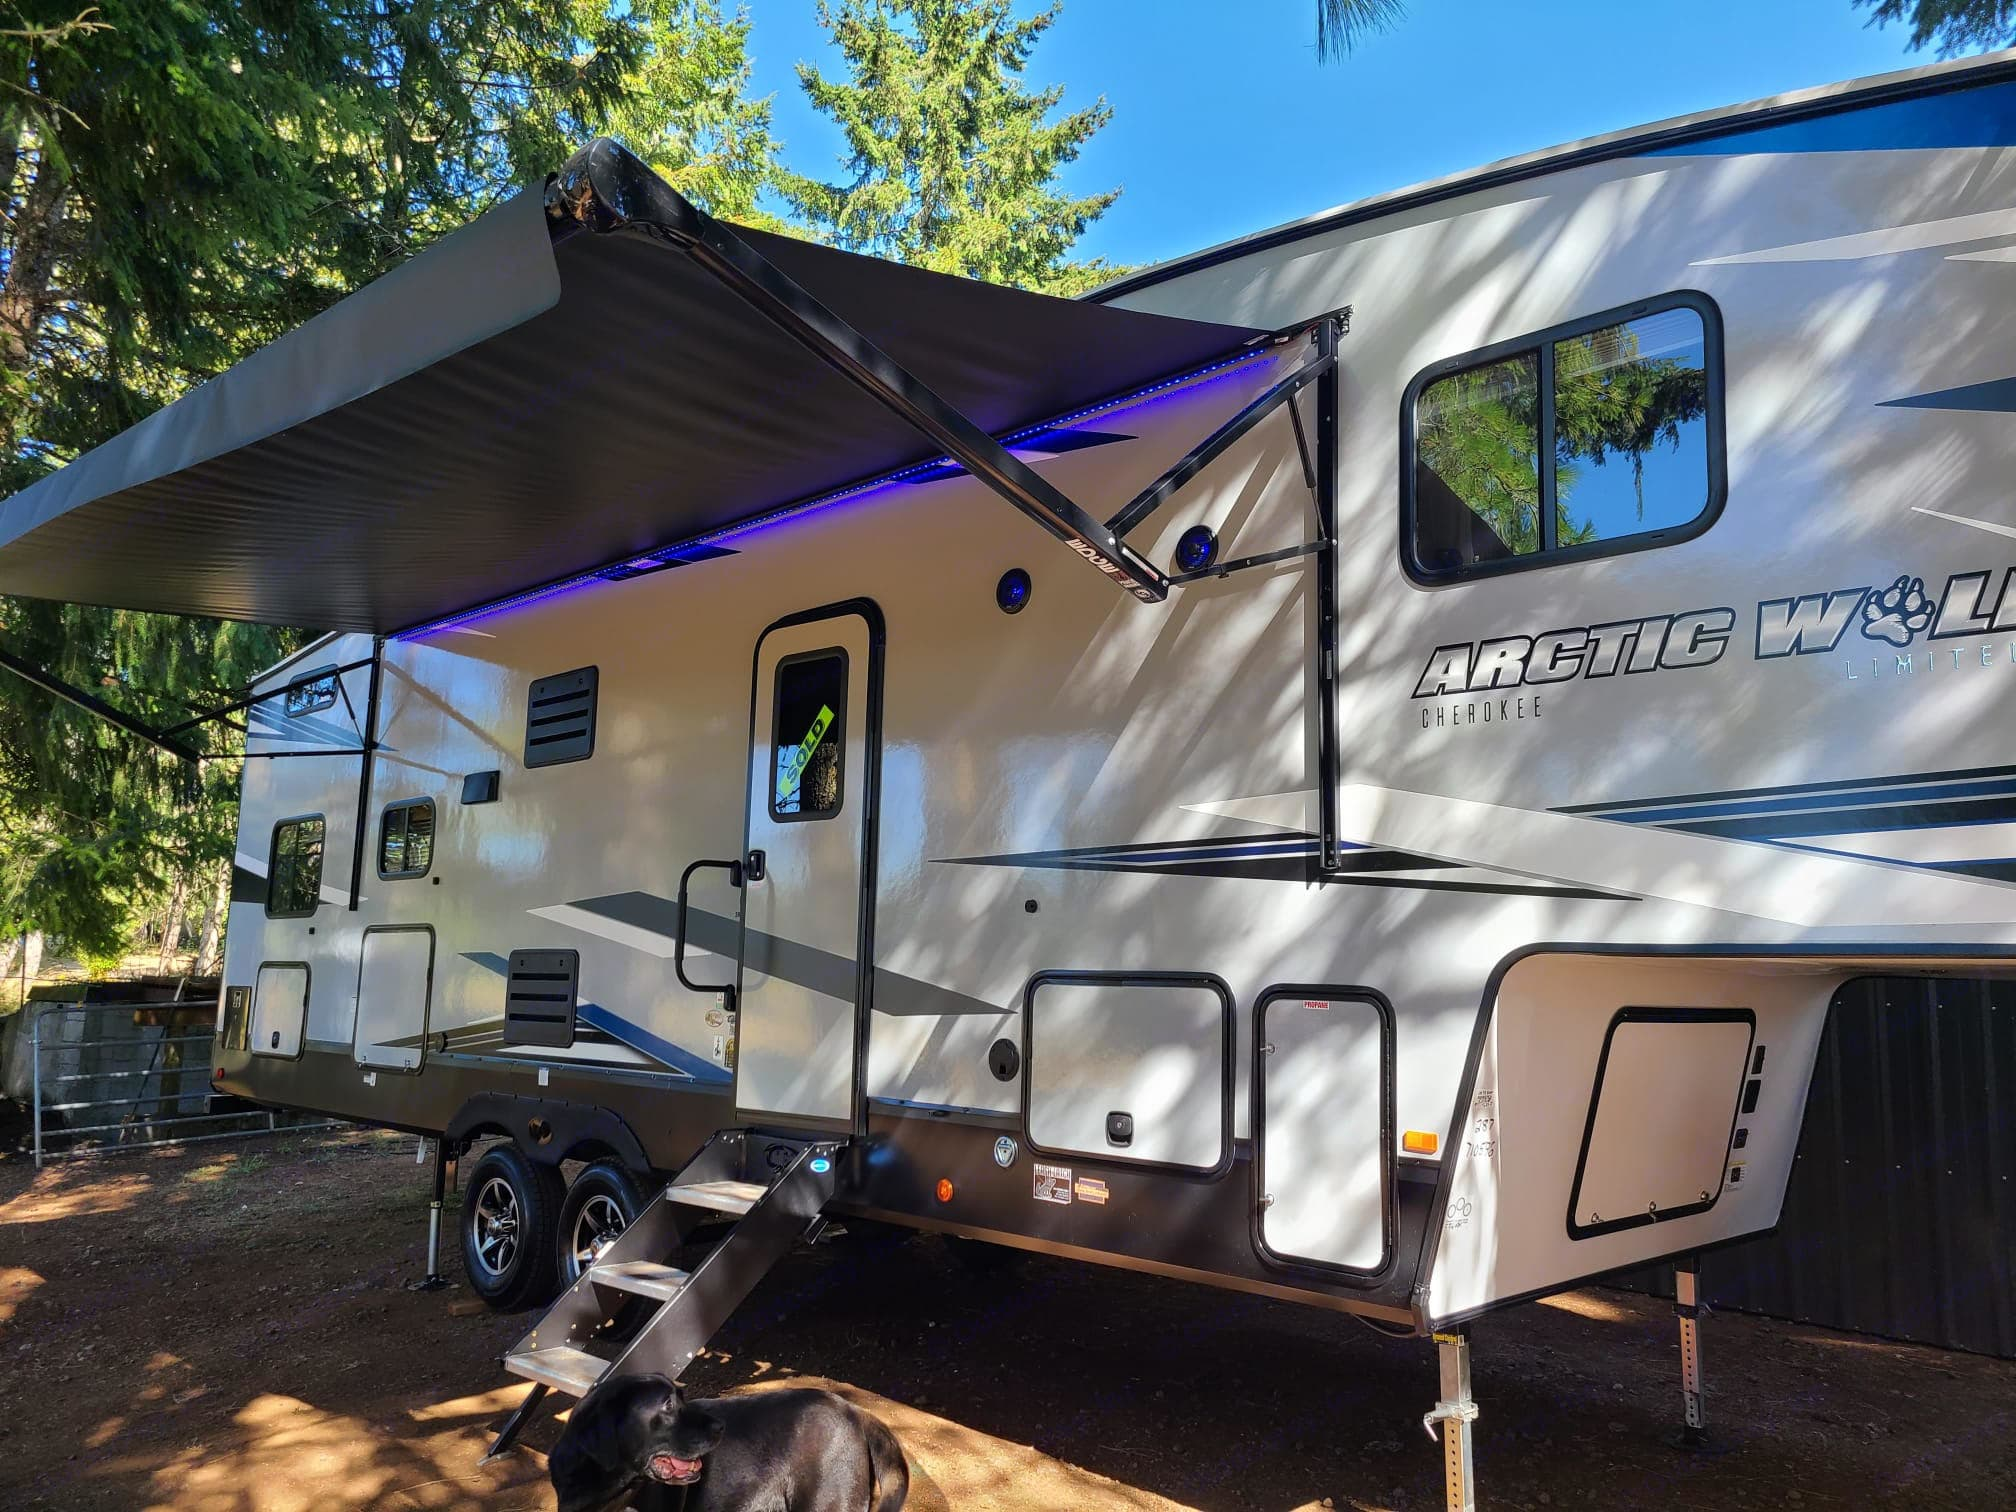 20ft Awning with LED, Outdoor speakers, outdoor Kitchen, 2 storage compartments. Forest River Cherokee 2021